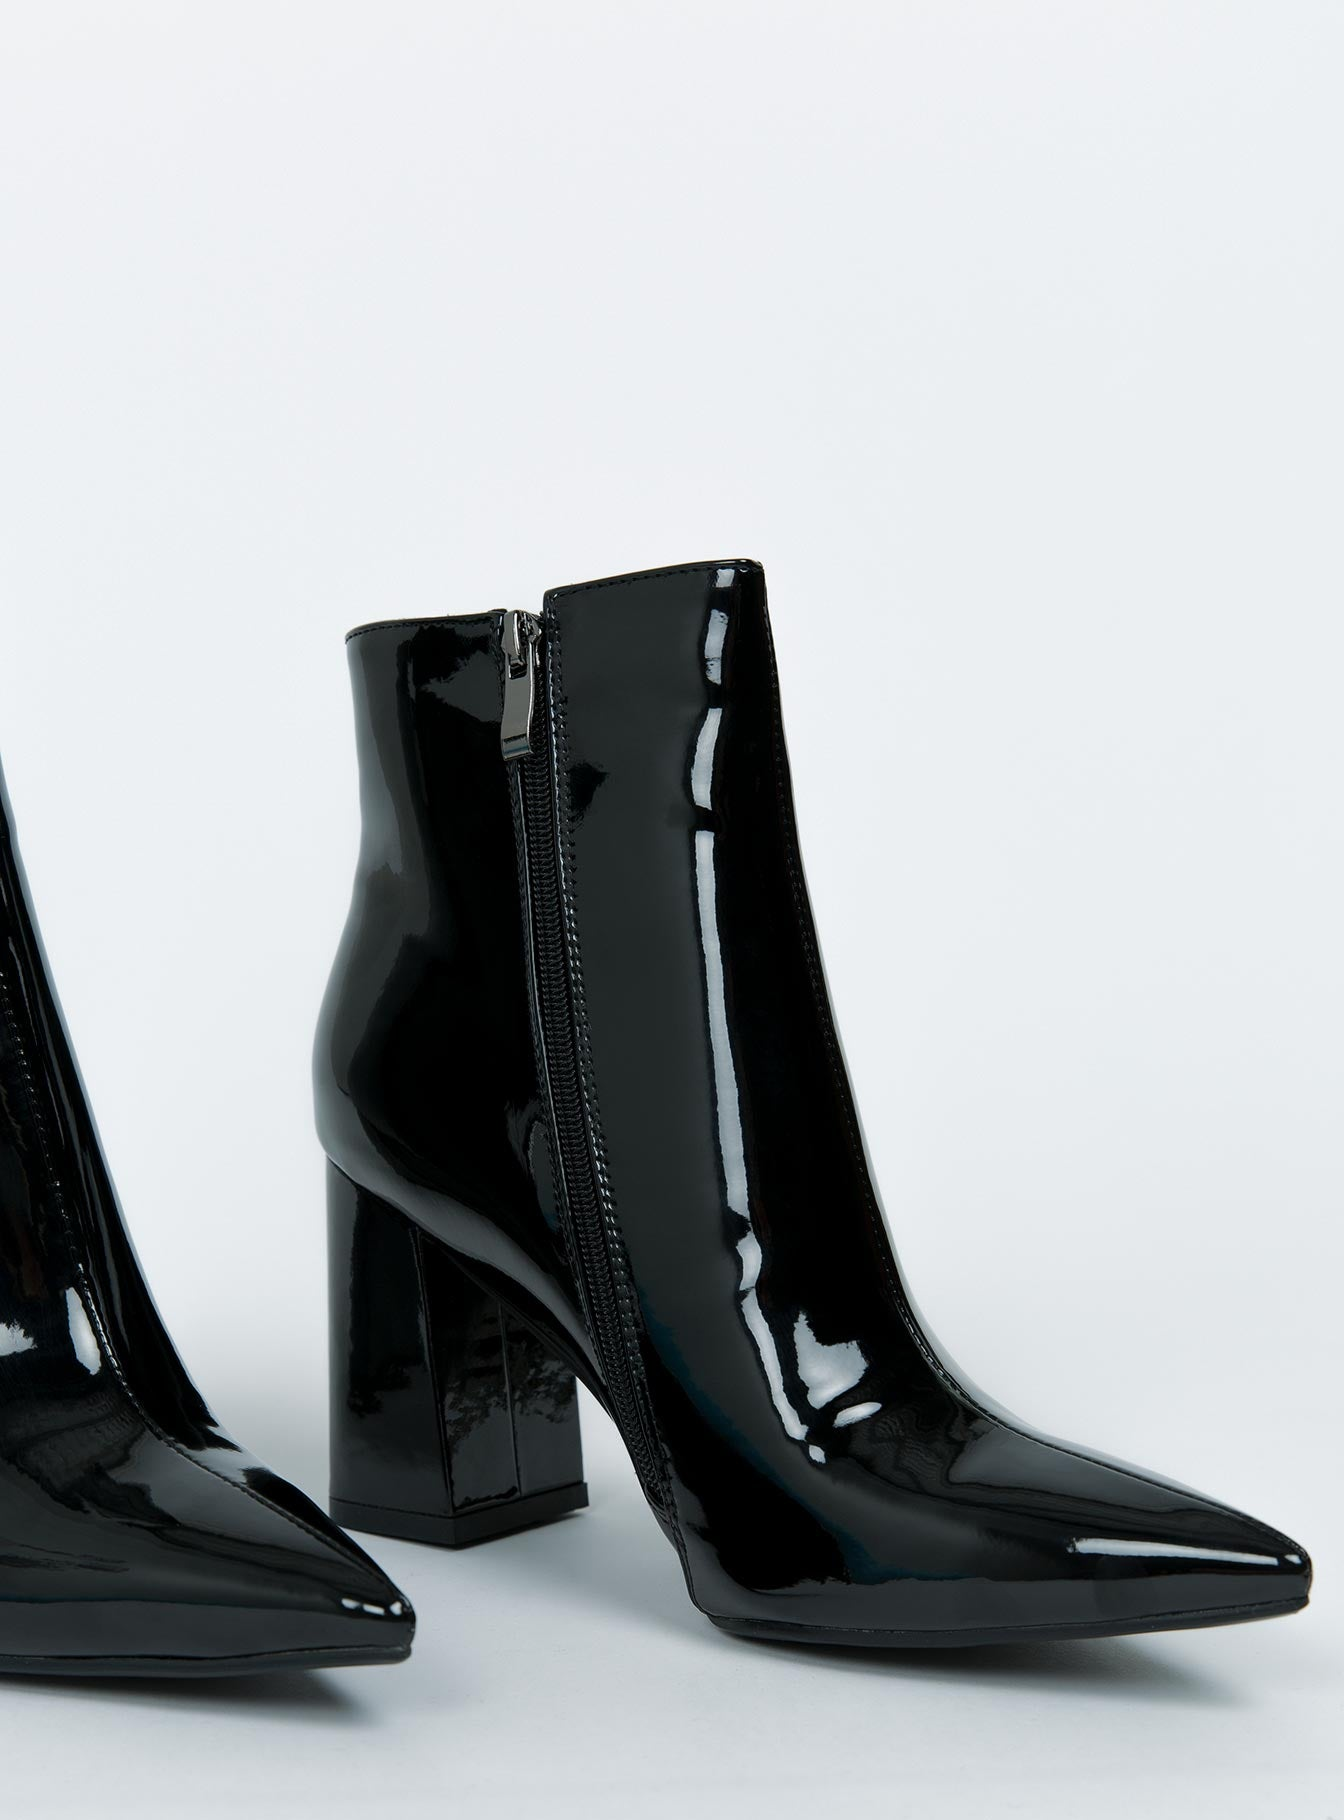 Therapy Black Patent Alloy Boots